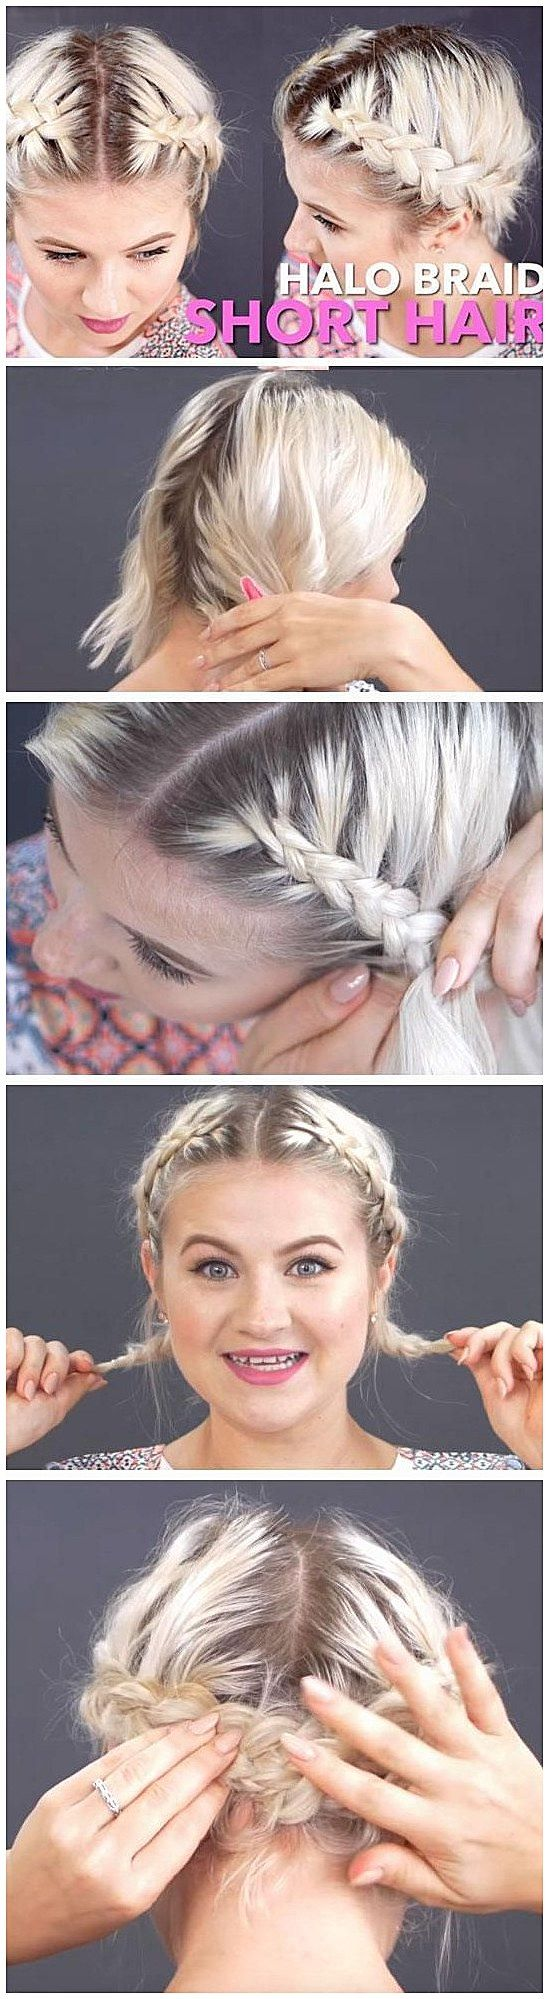 Halo braid easy festival hairstyles for short hair that works